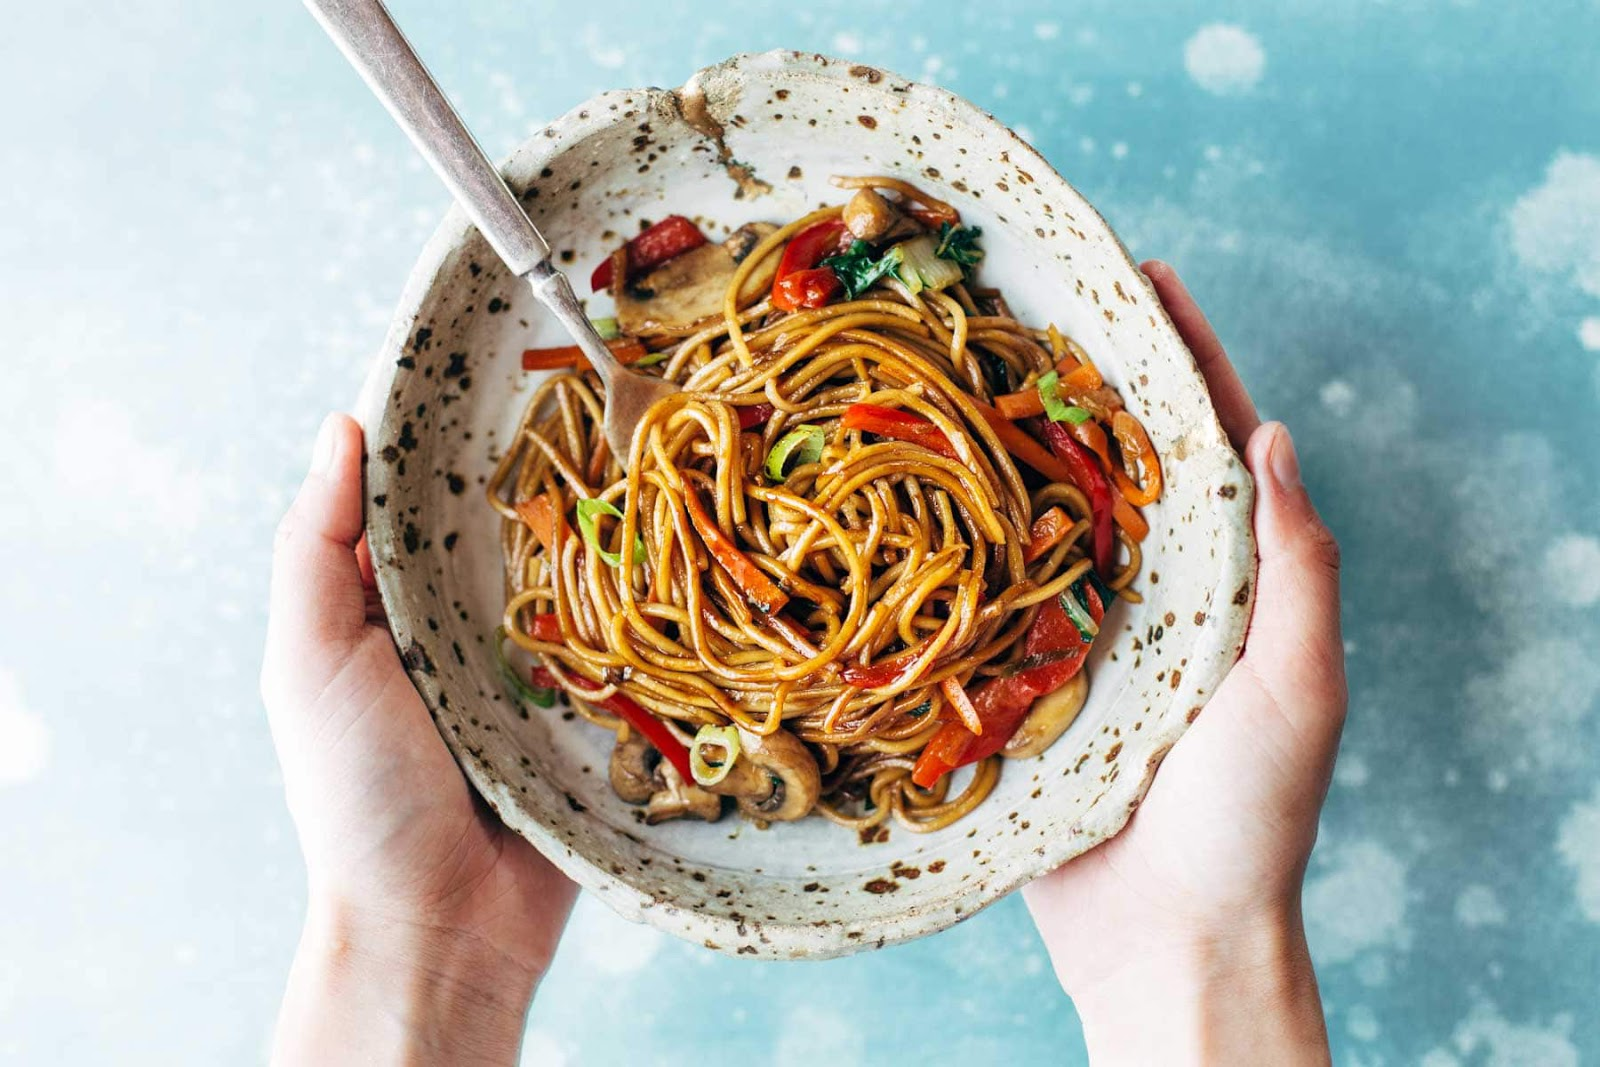 Easy healthy dinner recipes: 15 Minute Lo Mein